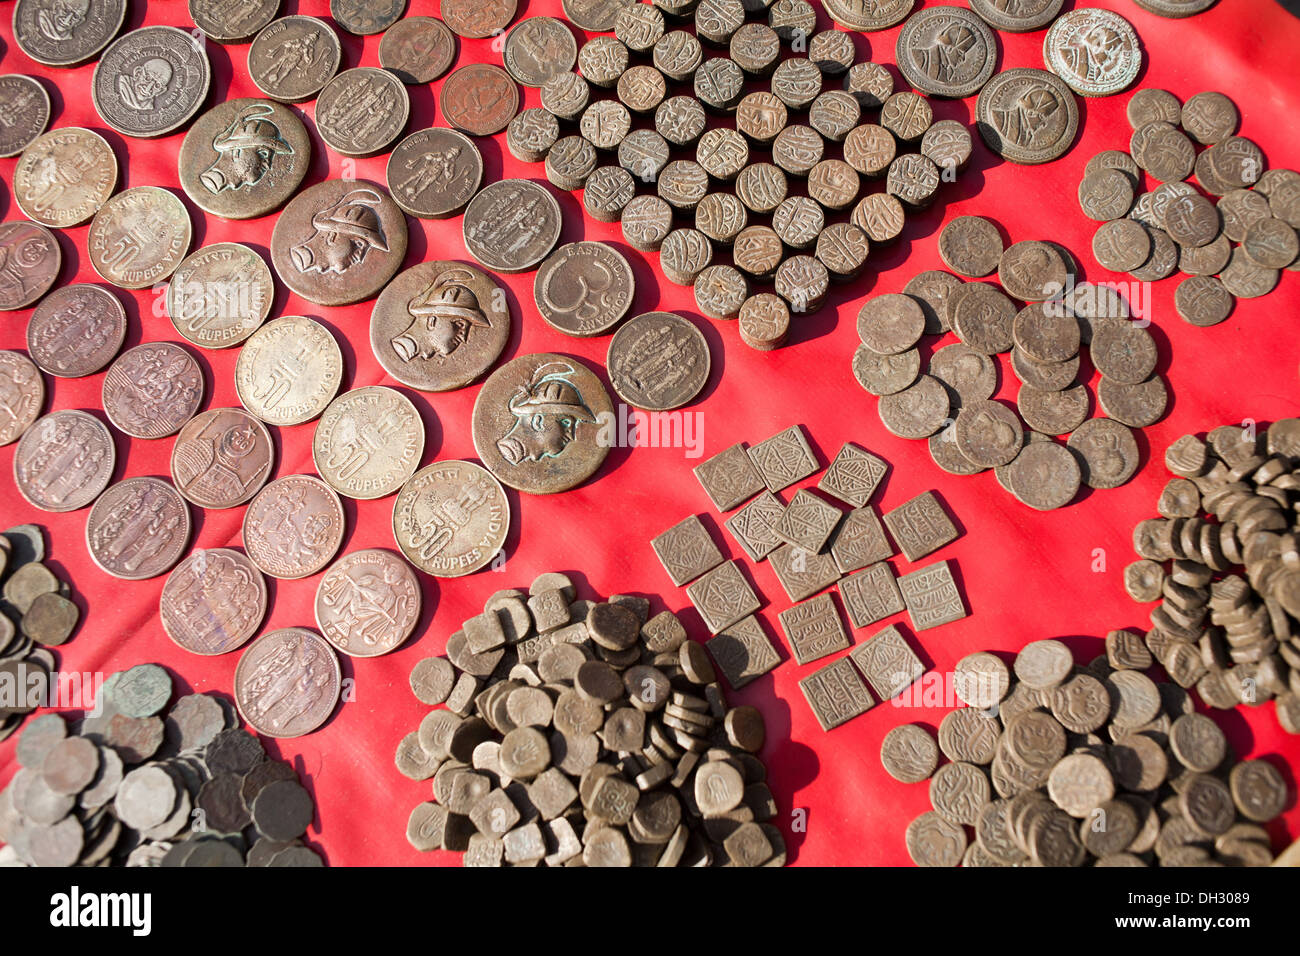 Ancient India Coin Stock Photos & Ancient India Coin Stock ...